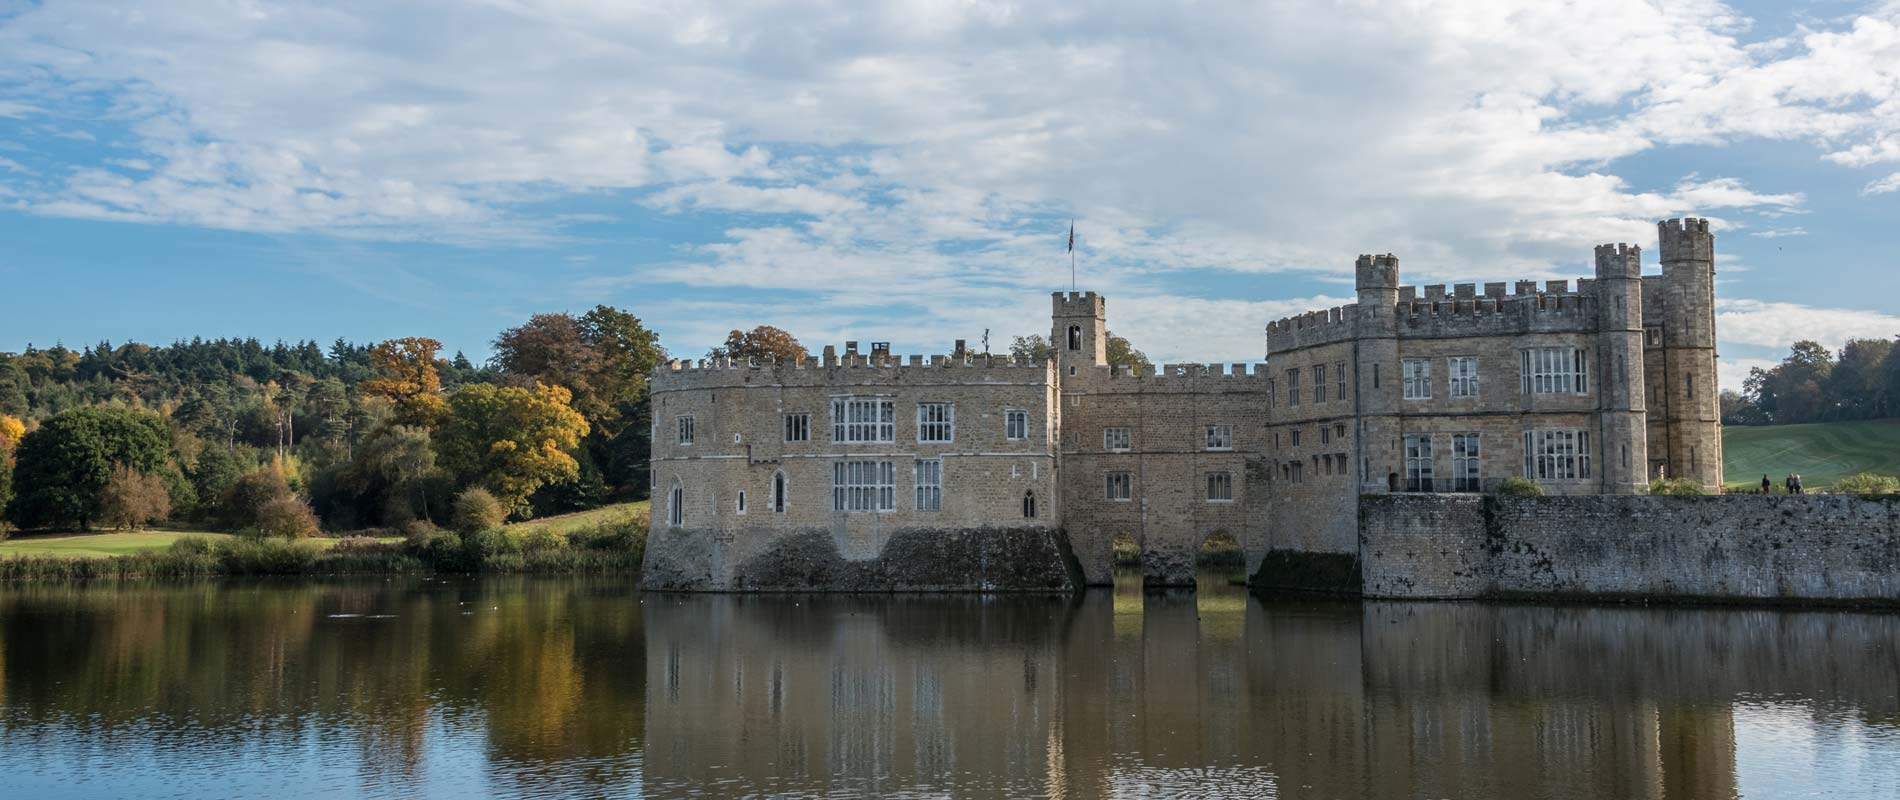 Leeds Castle in Kent surrounded by trees and lake